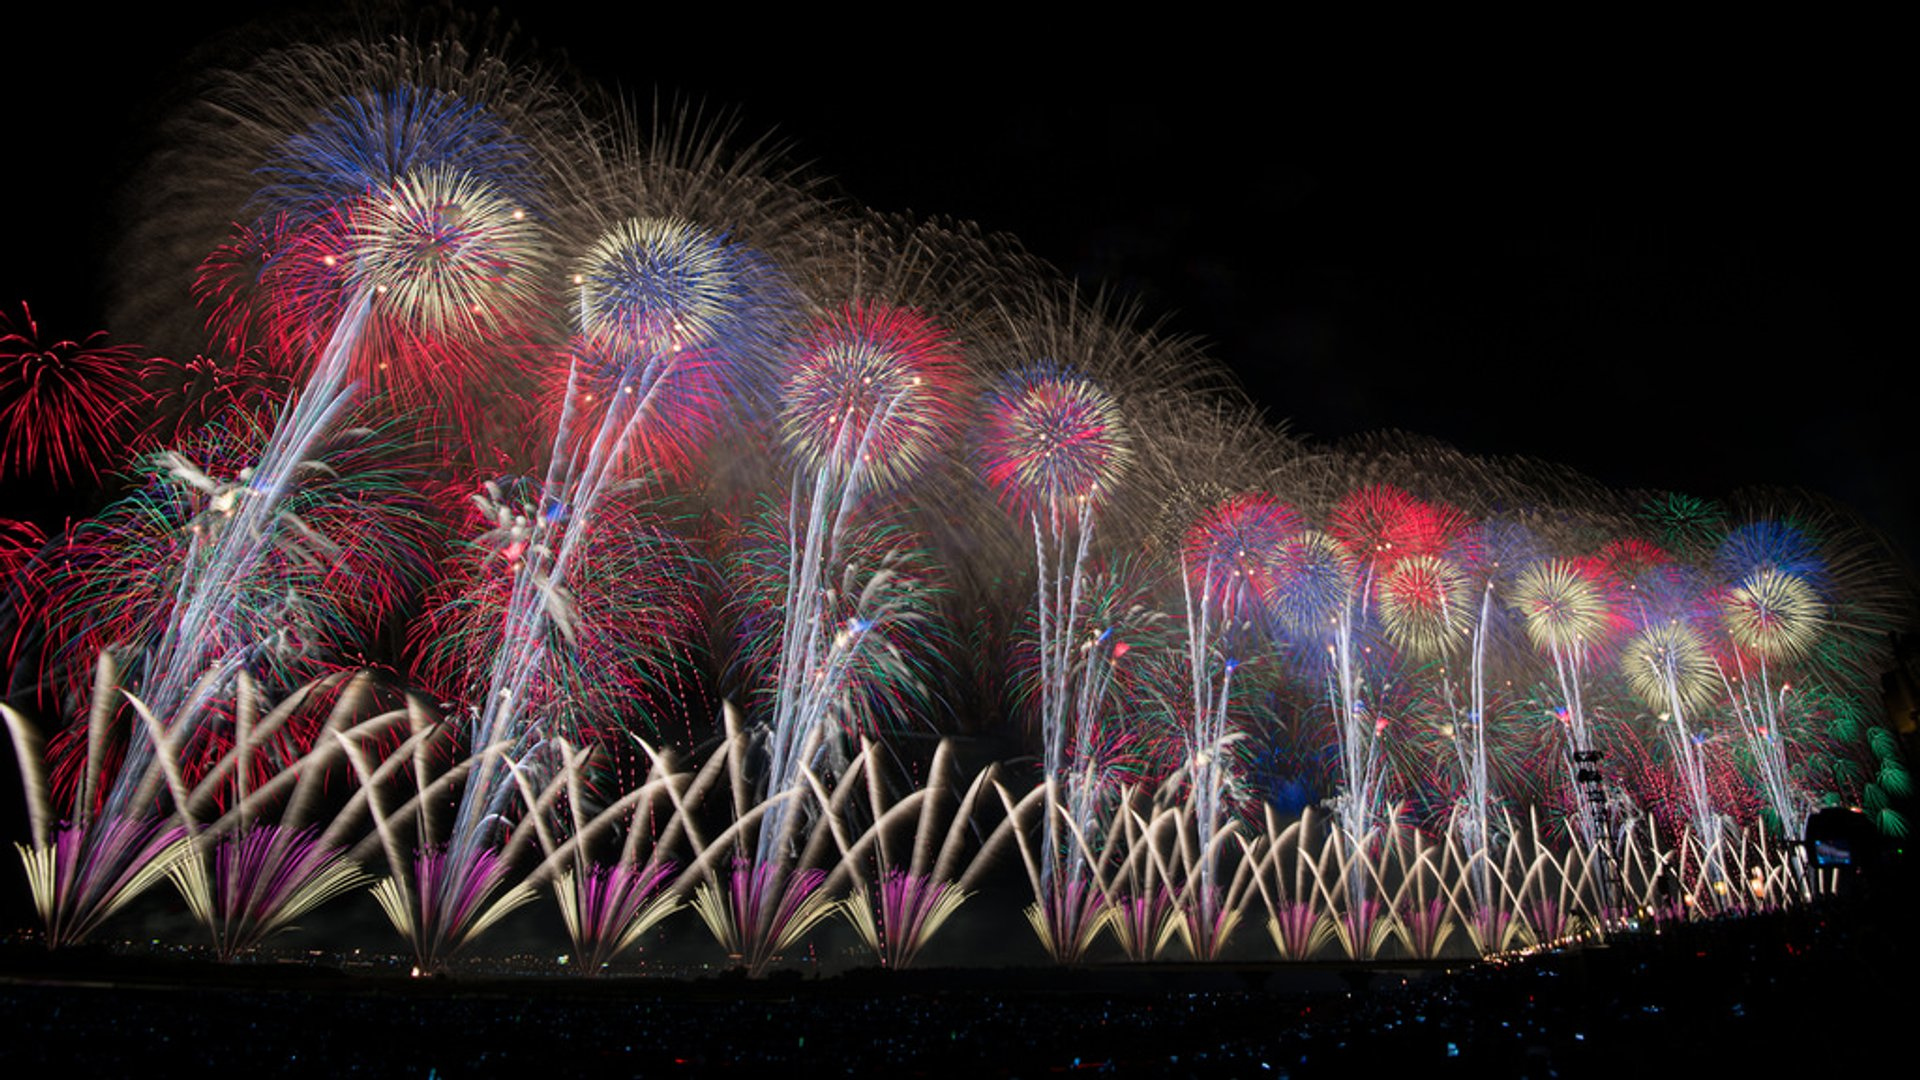 Nagaoka Fireworks Festival in Japan 2019 - Best Time